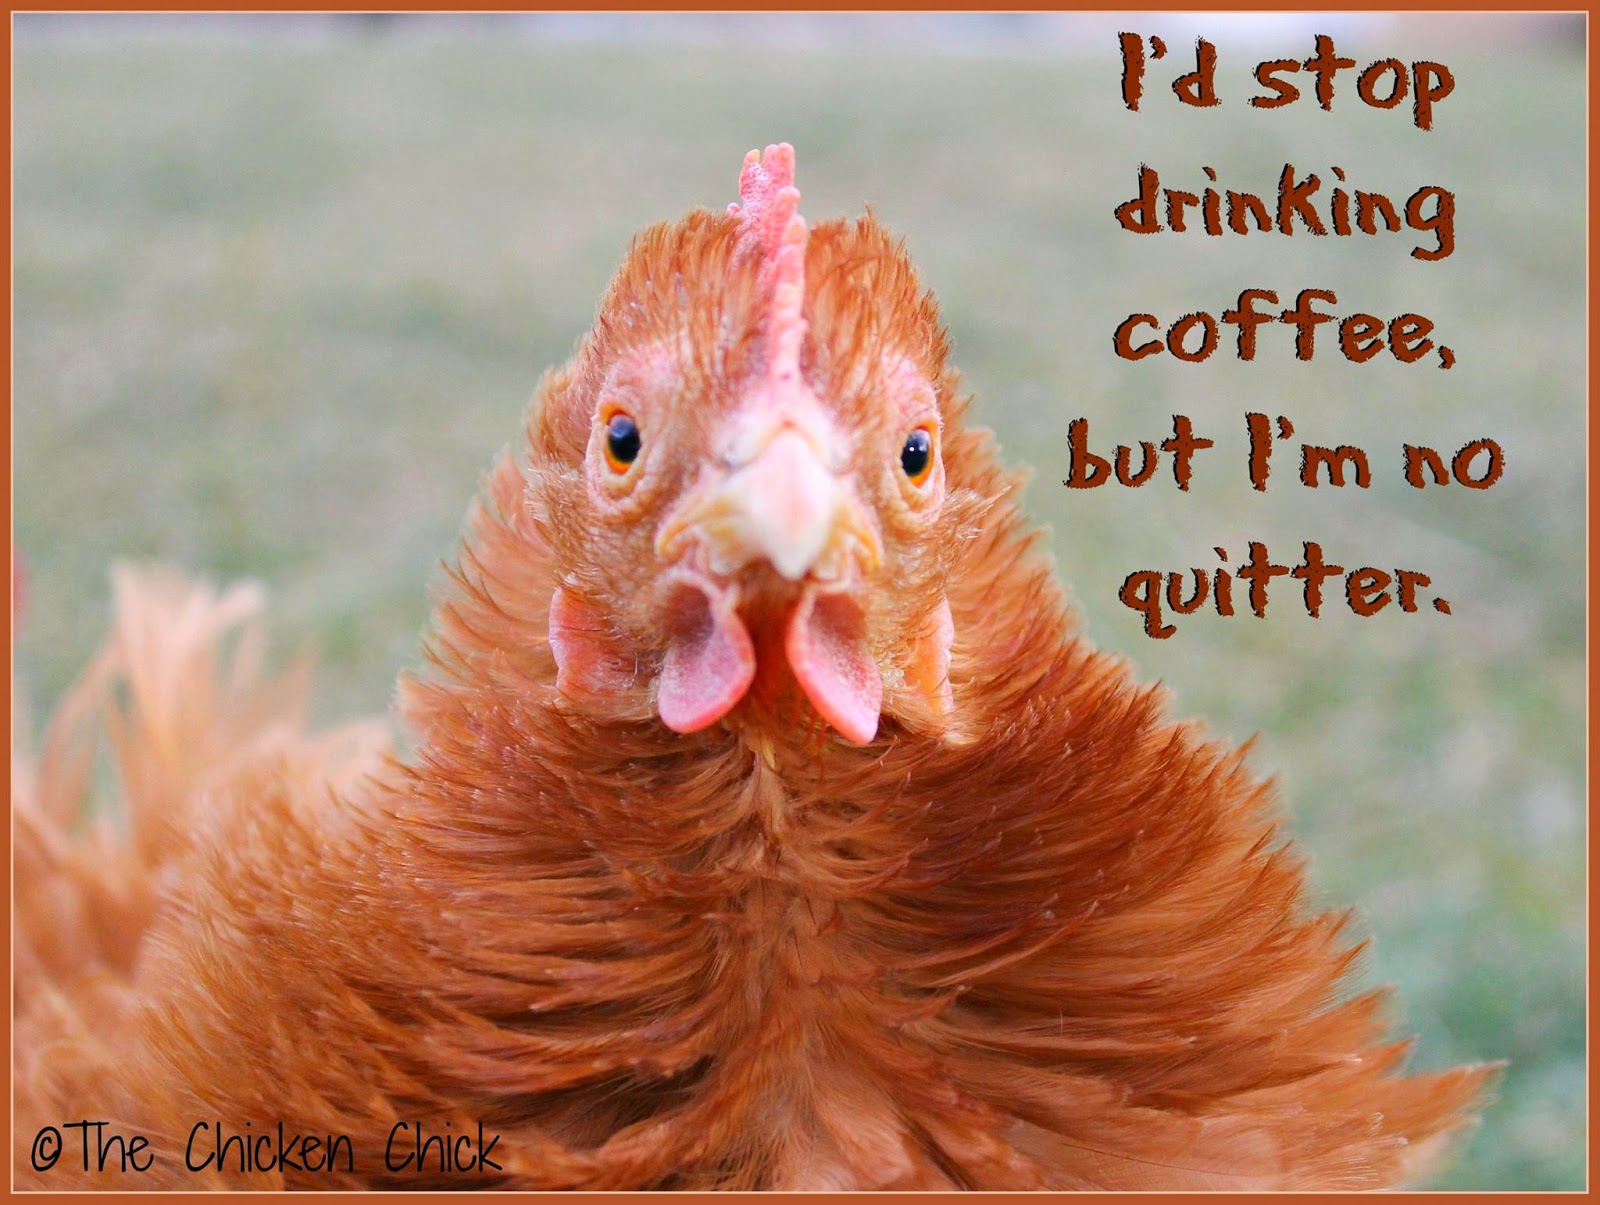 I'd stop drinking coffee, but I'm no quitter.